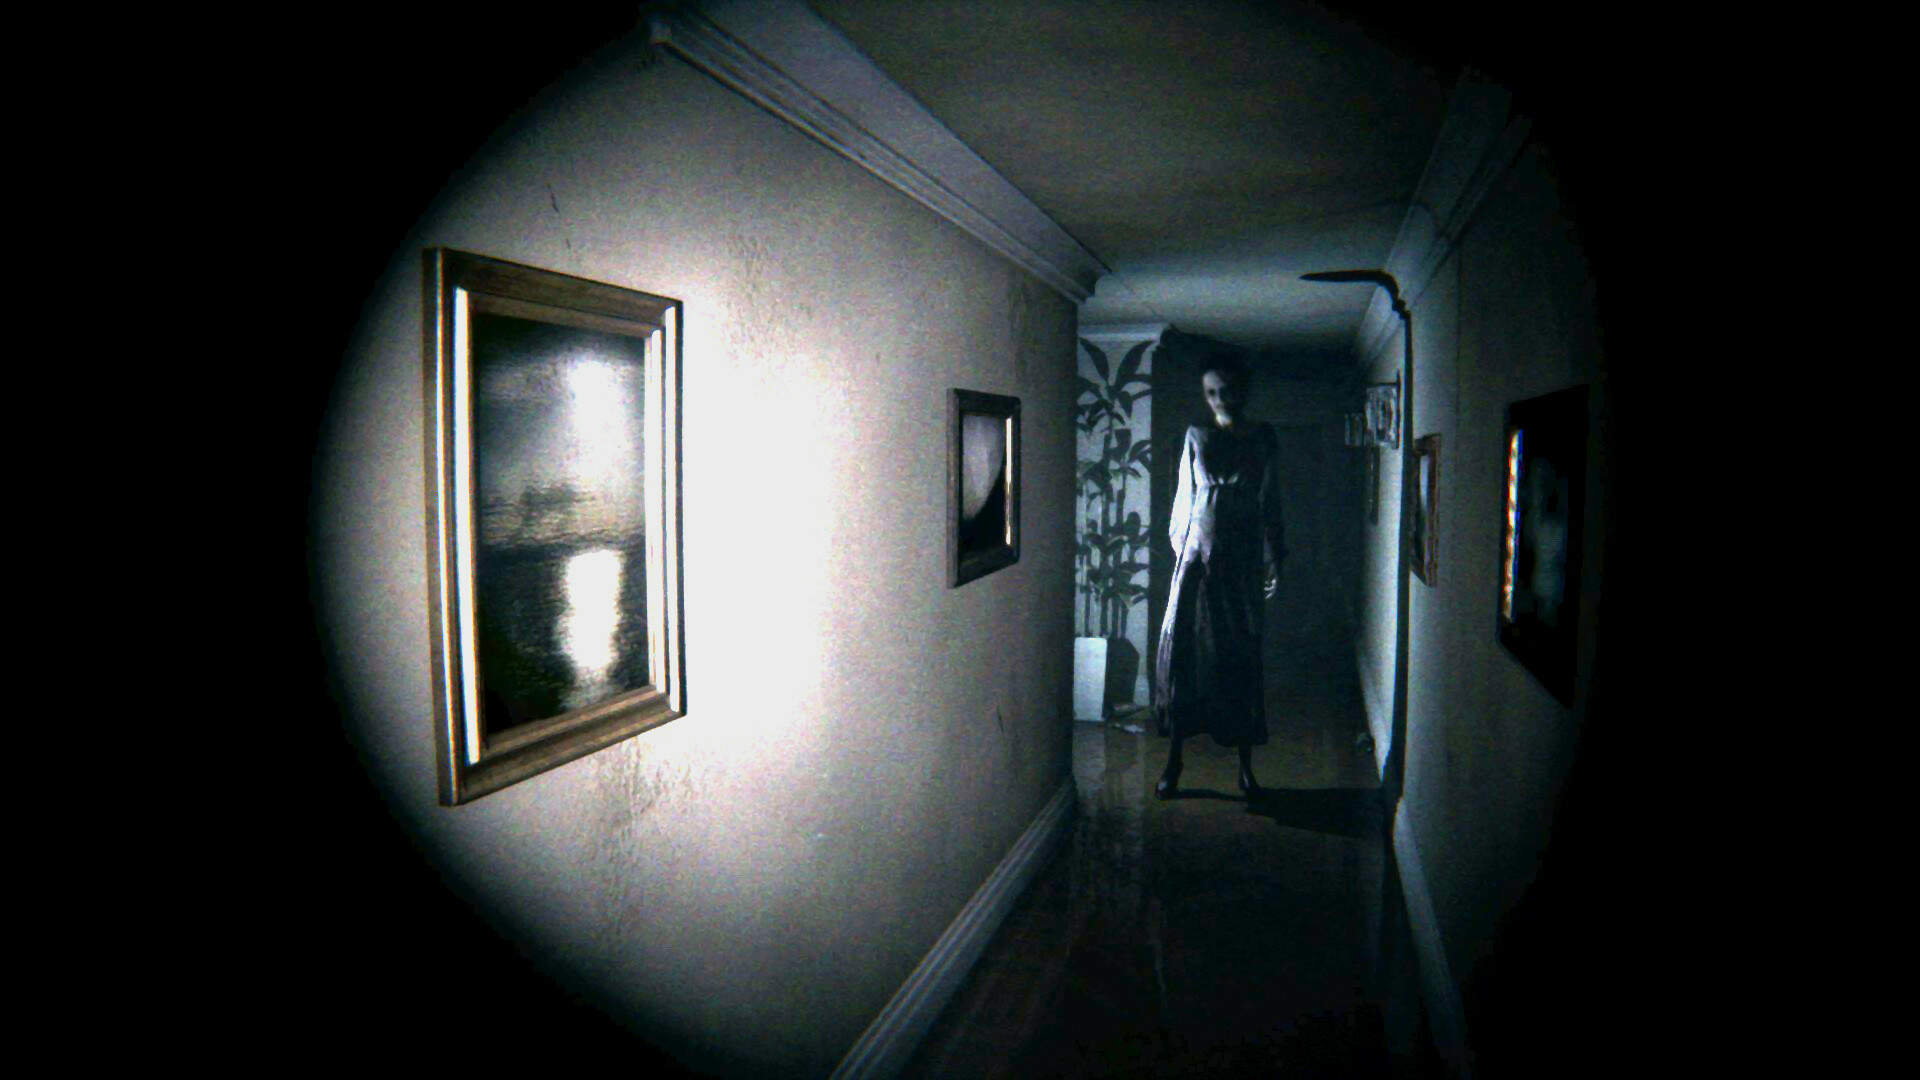 A Modder Goes on a Tour of P.T.'s Silent Hills Map With New Hack